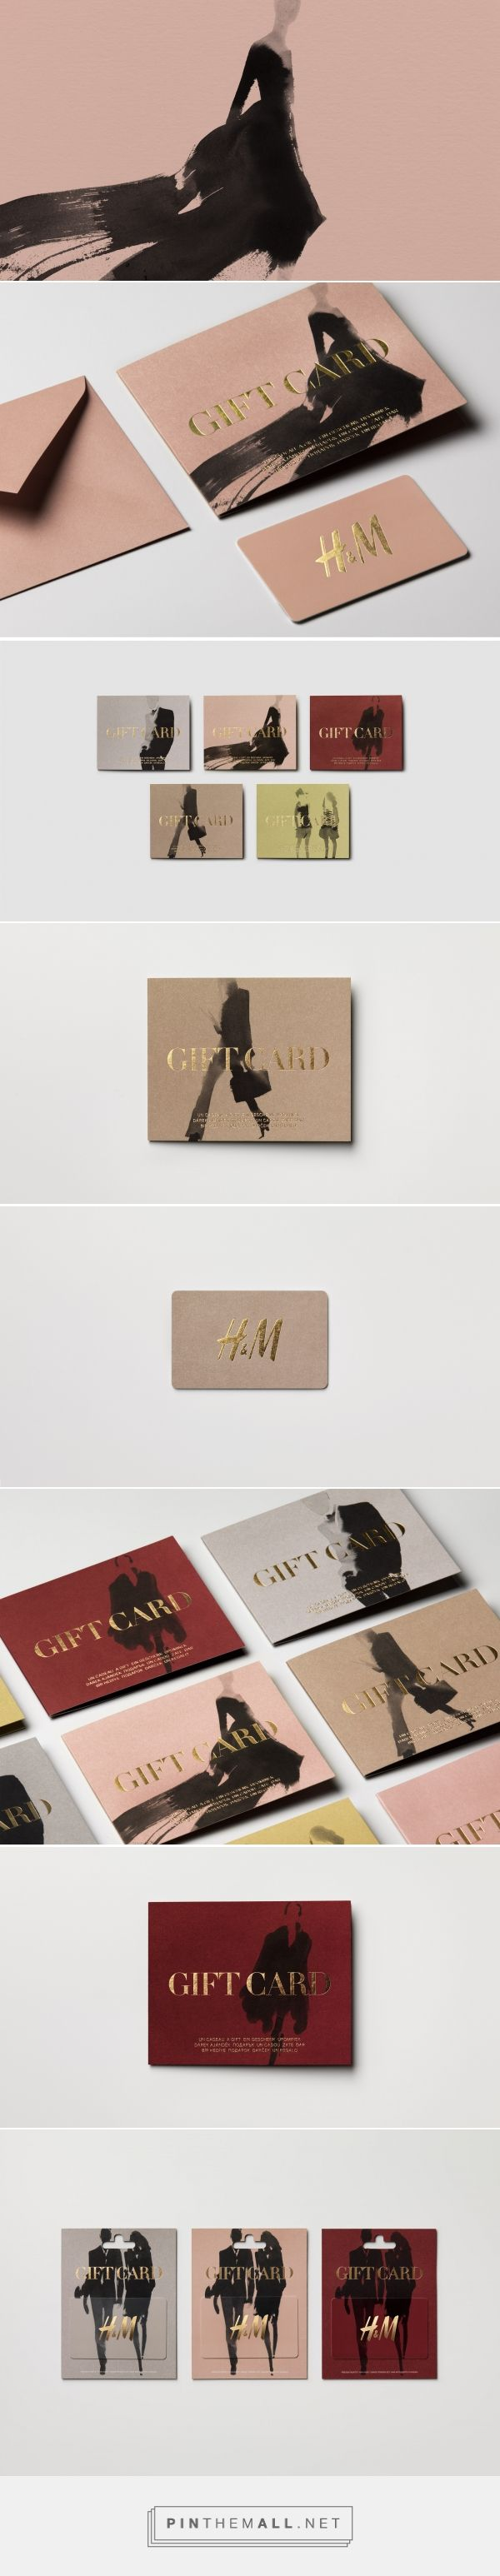 Best 25+ Fashion business cards ideas on Pinterest | Beauty ...